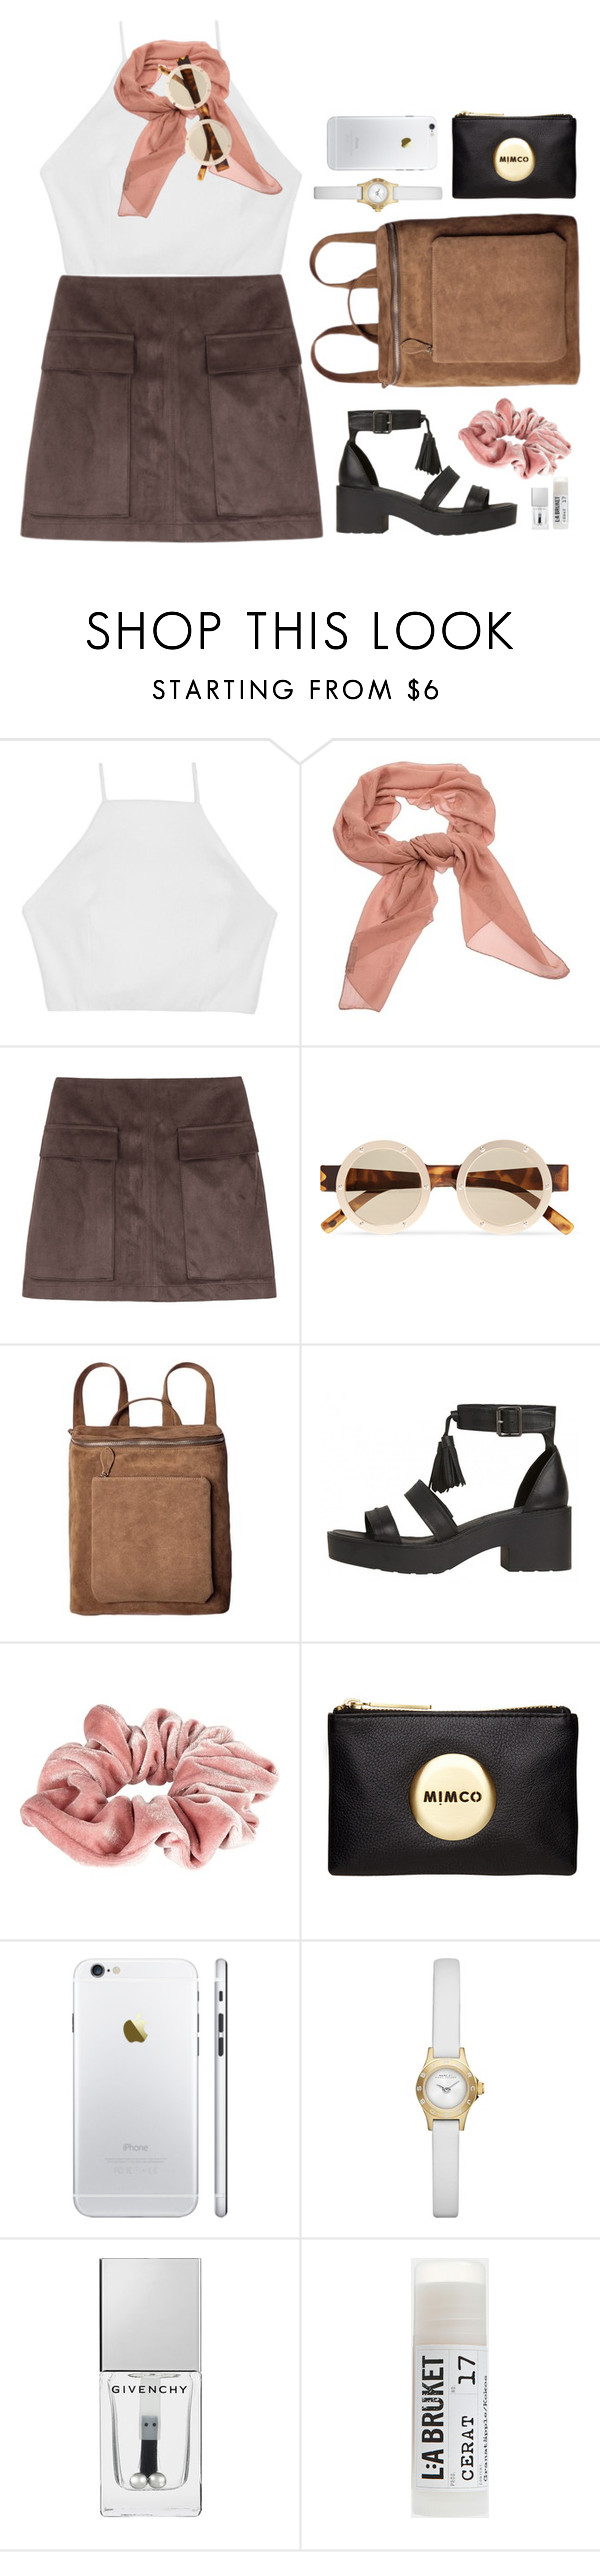 """just tune into new sensations"" by cinnamondonut ❤ liked on Polyvore featuring rag & bone, Salvatore Ferragamo, Le Specs, River Island, Mimco, Marc by Marc Jacobs, Givenchy and Toast"